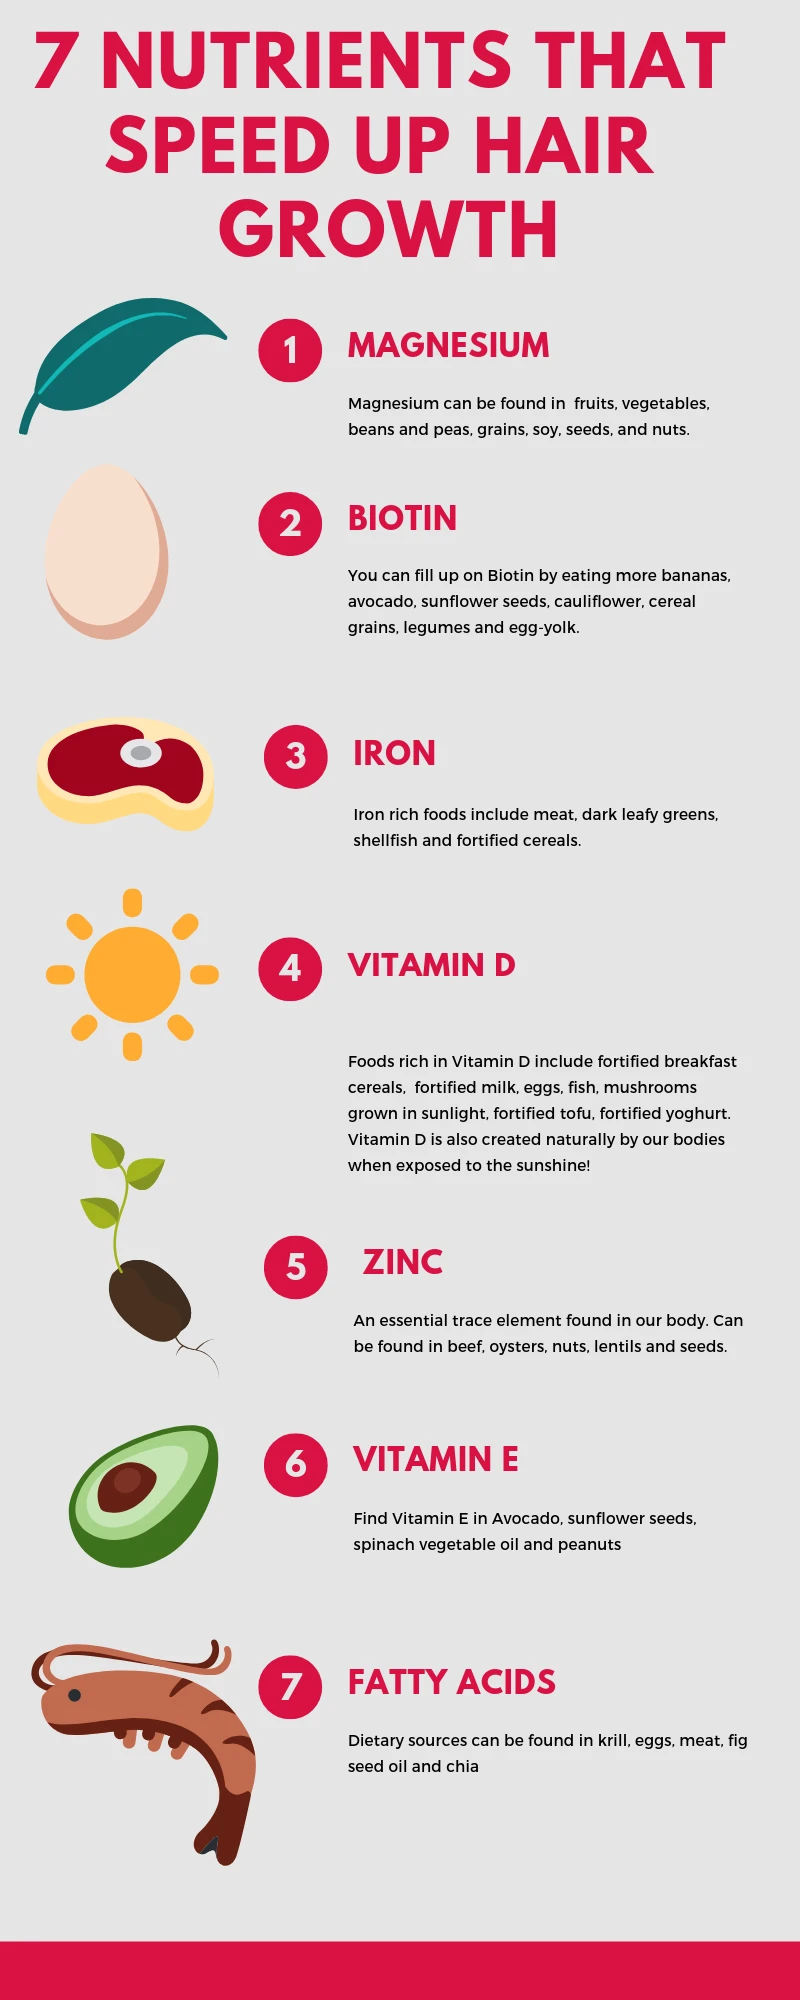 7 nutrients that speed up hair growth